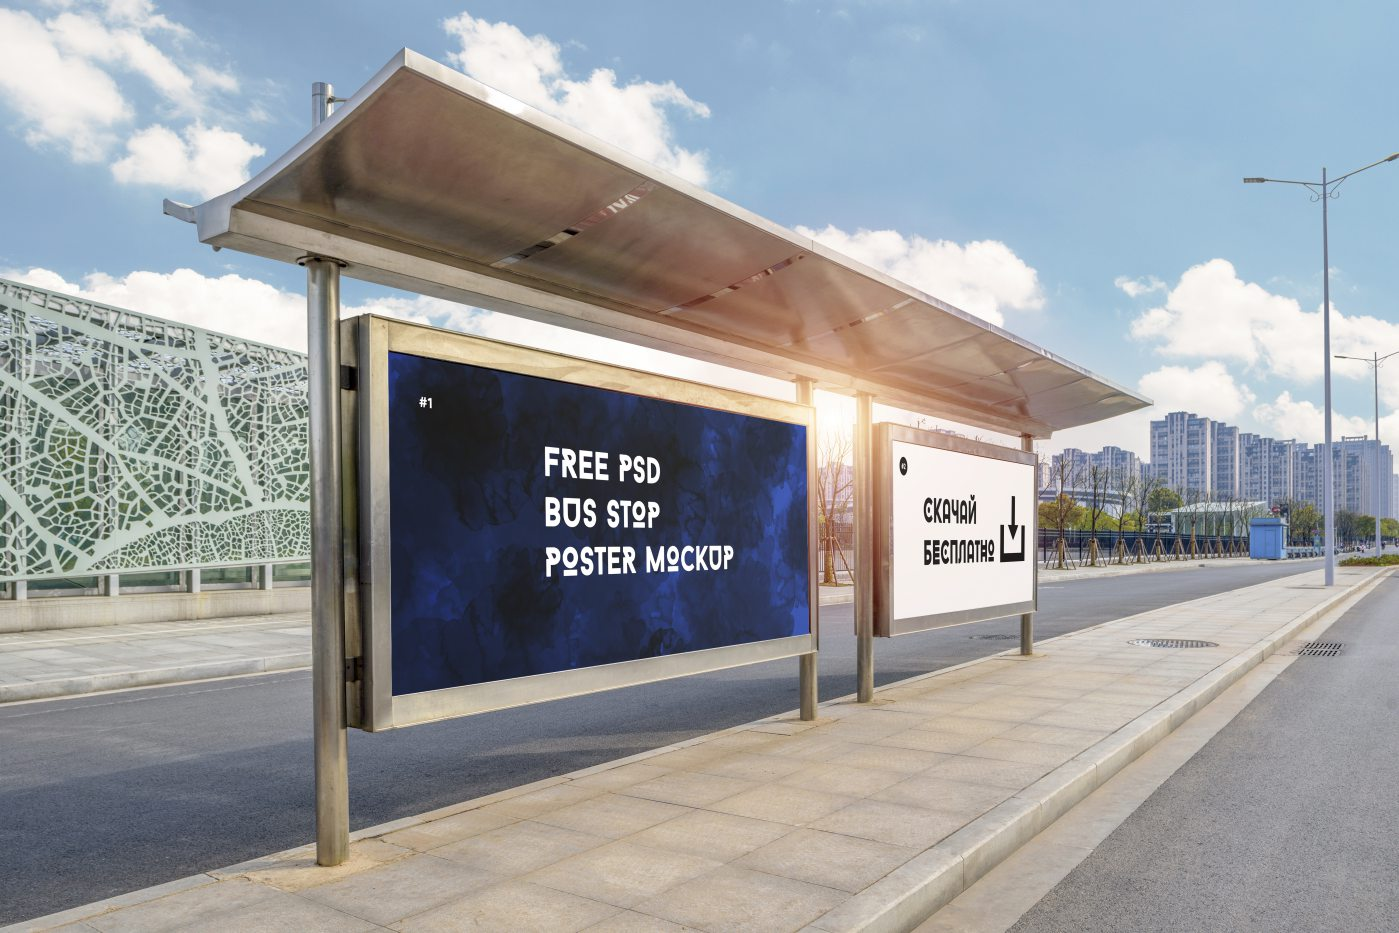 Free PSD Bus Stop Poster Mockup